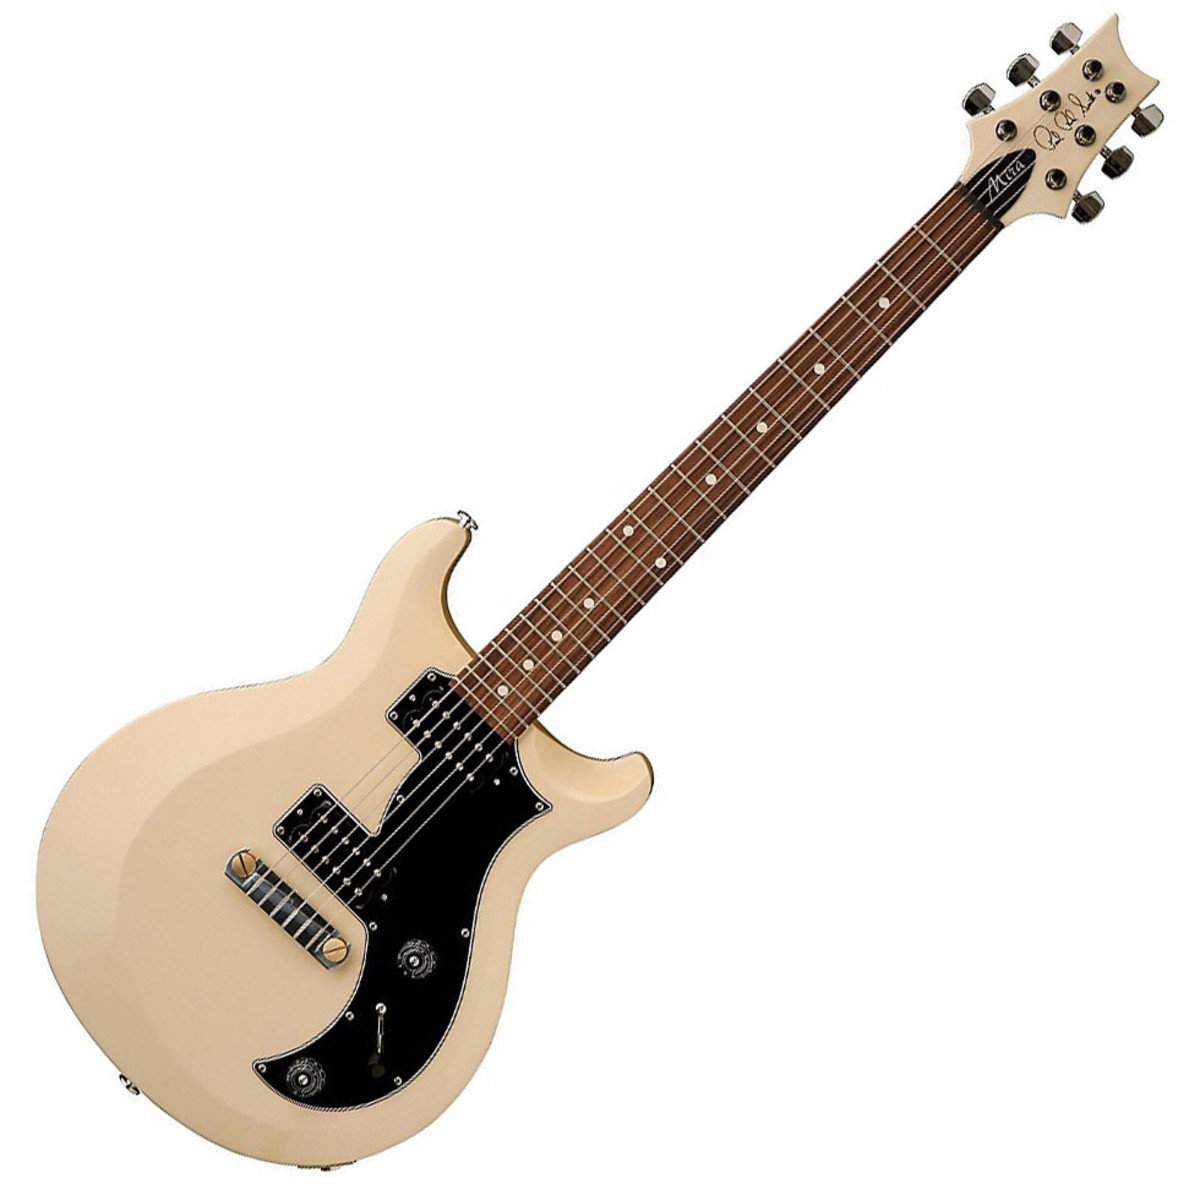 prs s2 mira electric guitar antique white with dot inlays at. Black Bedroom Furniture Sets. Home Design Ideas